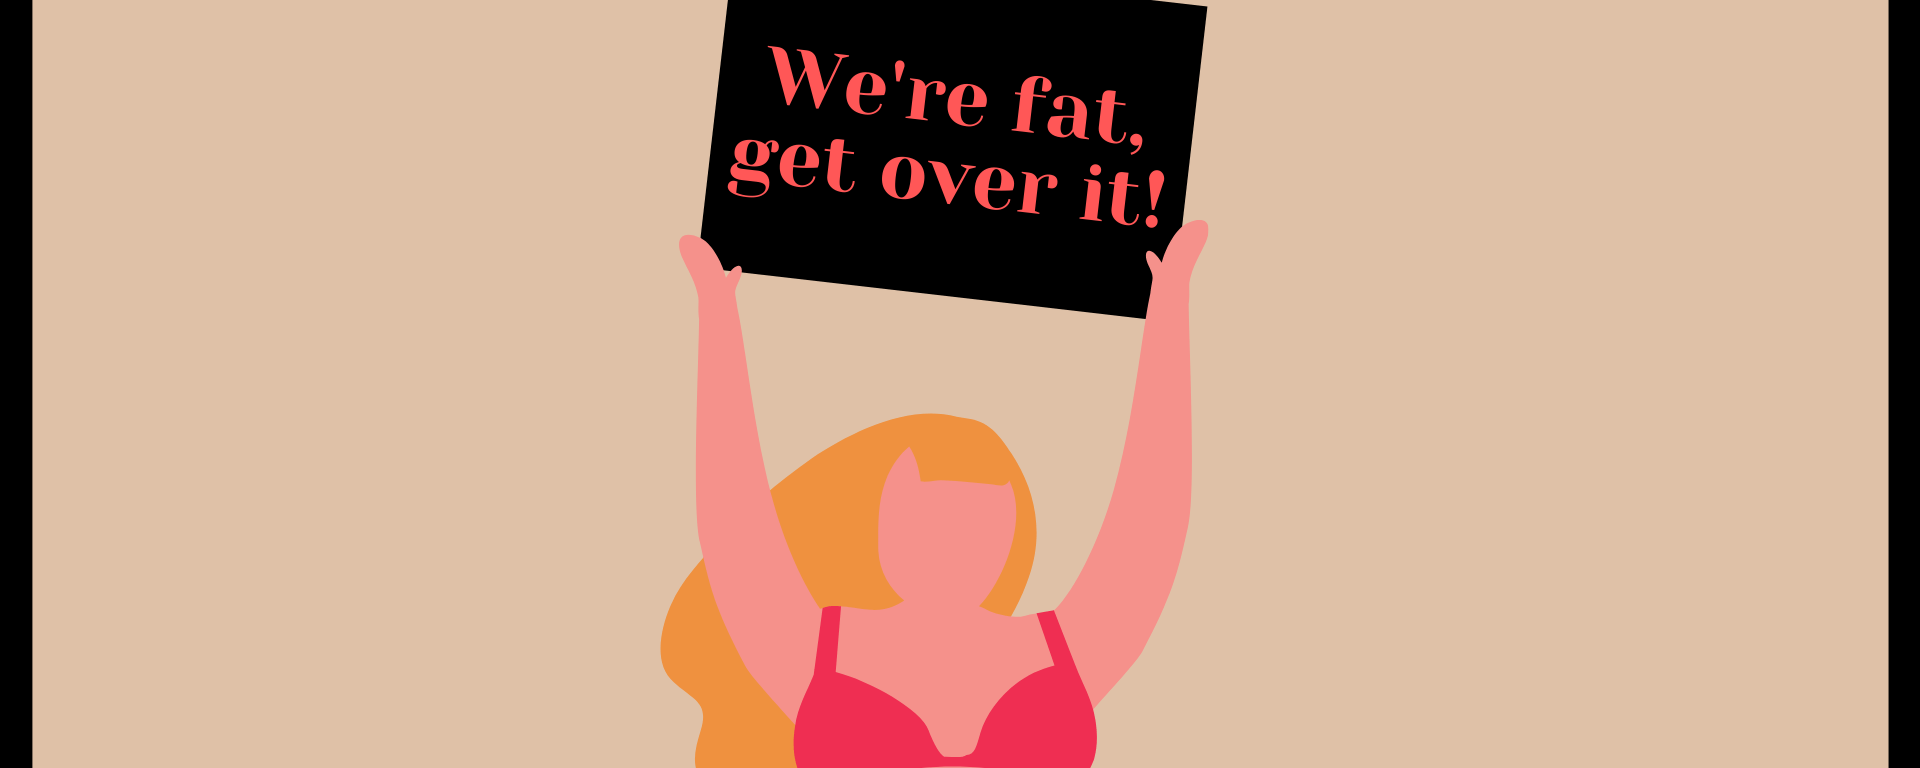 """Plus size cartoon women in a bikini with blonde hair holds up a sign that says, """"We're fat, get over it""""."""